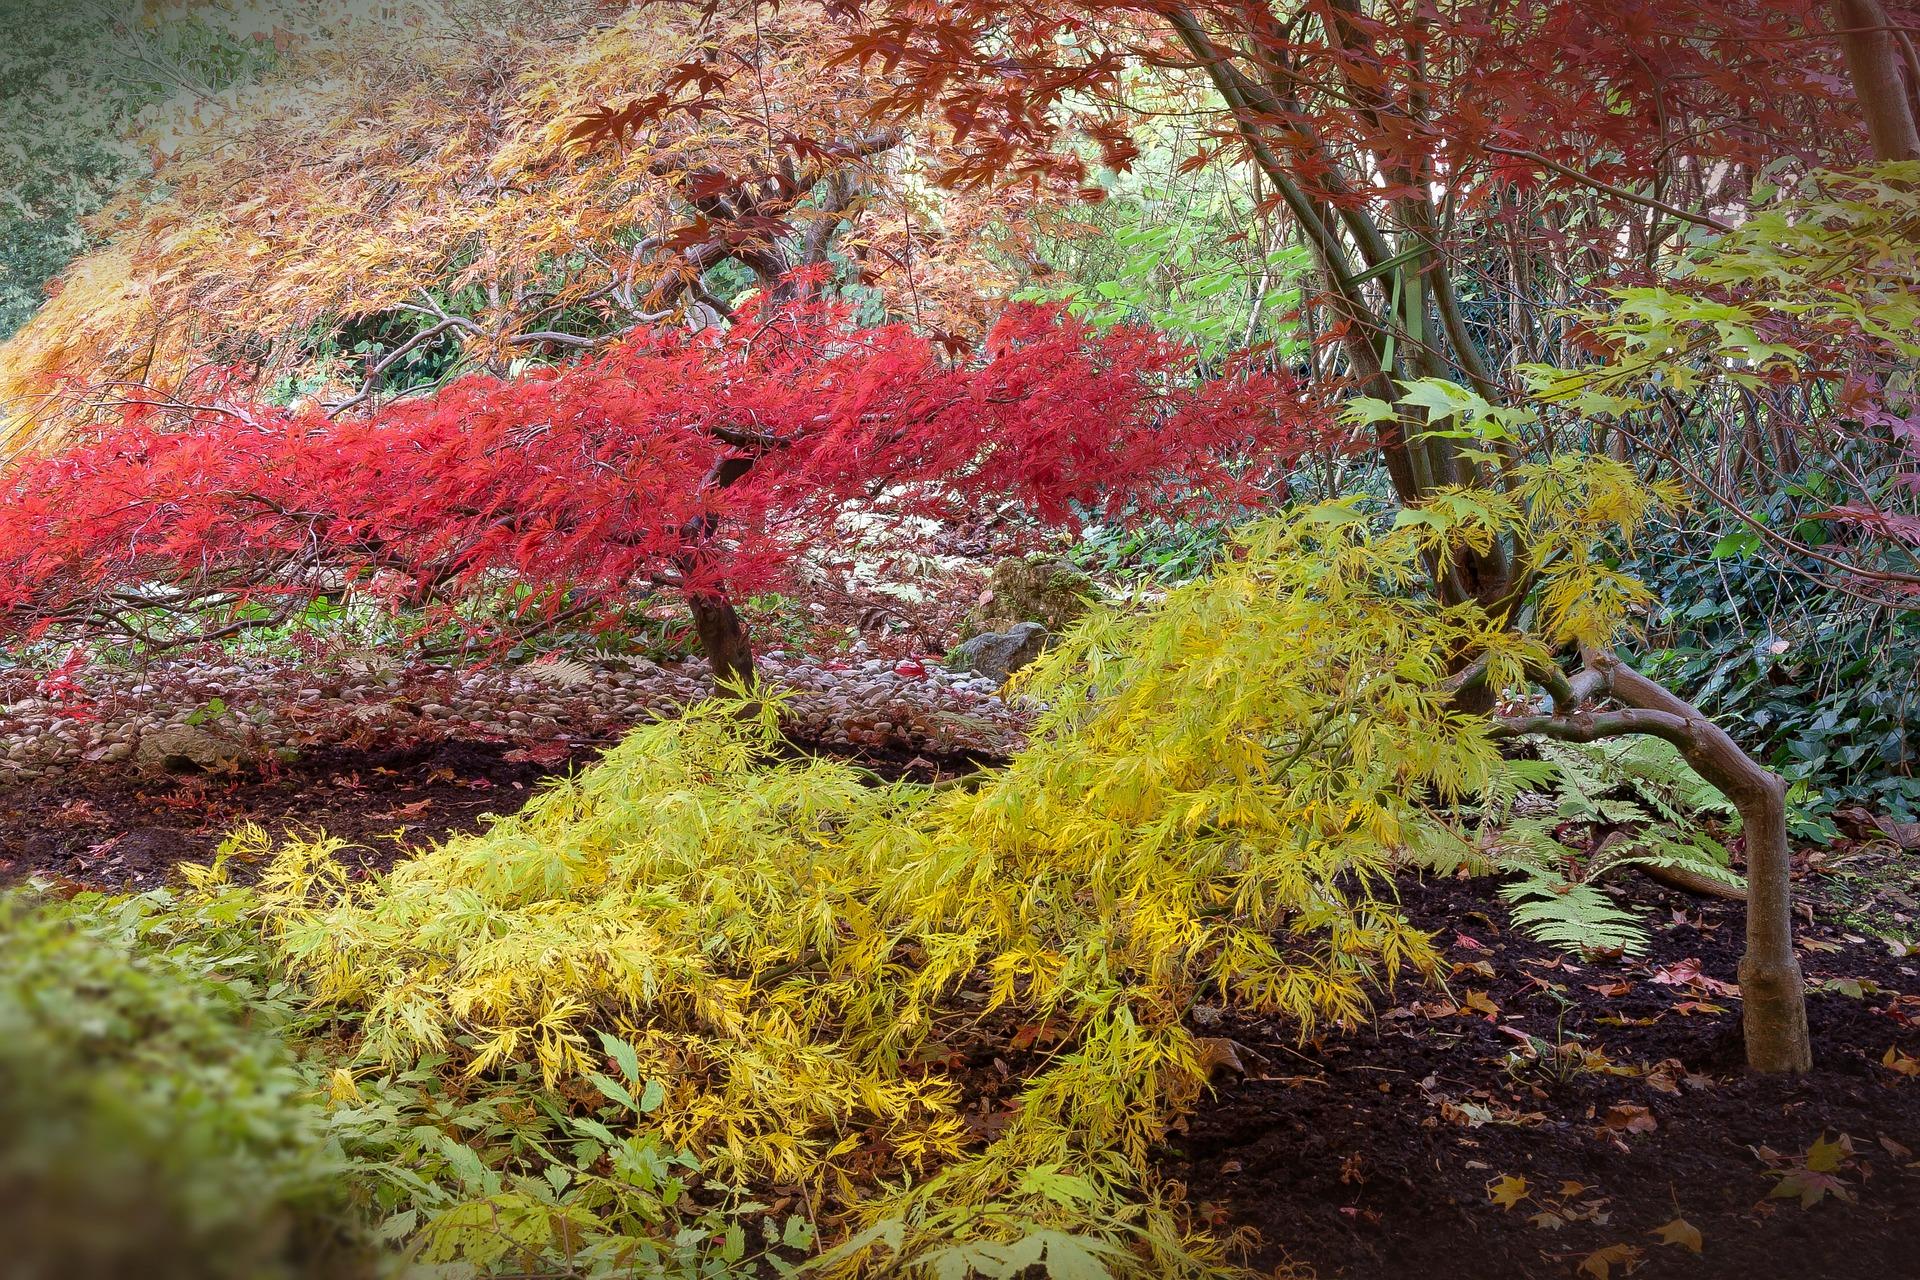 Four different varieties of low-growing Japanese maples can be seen in this image.